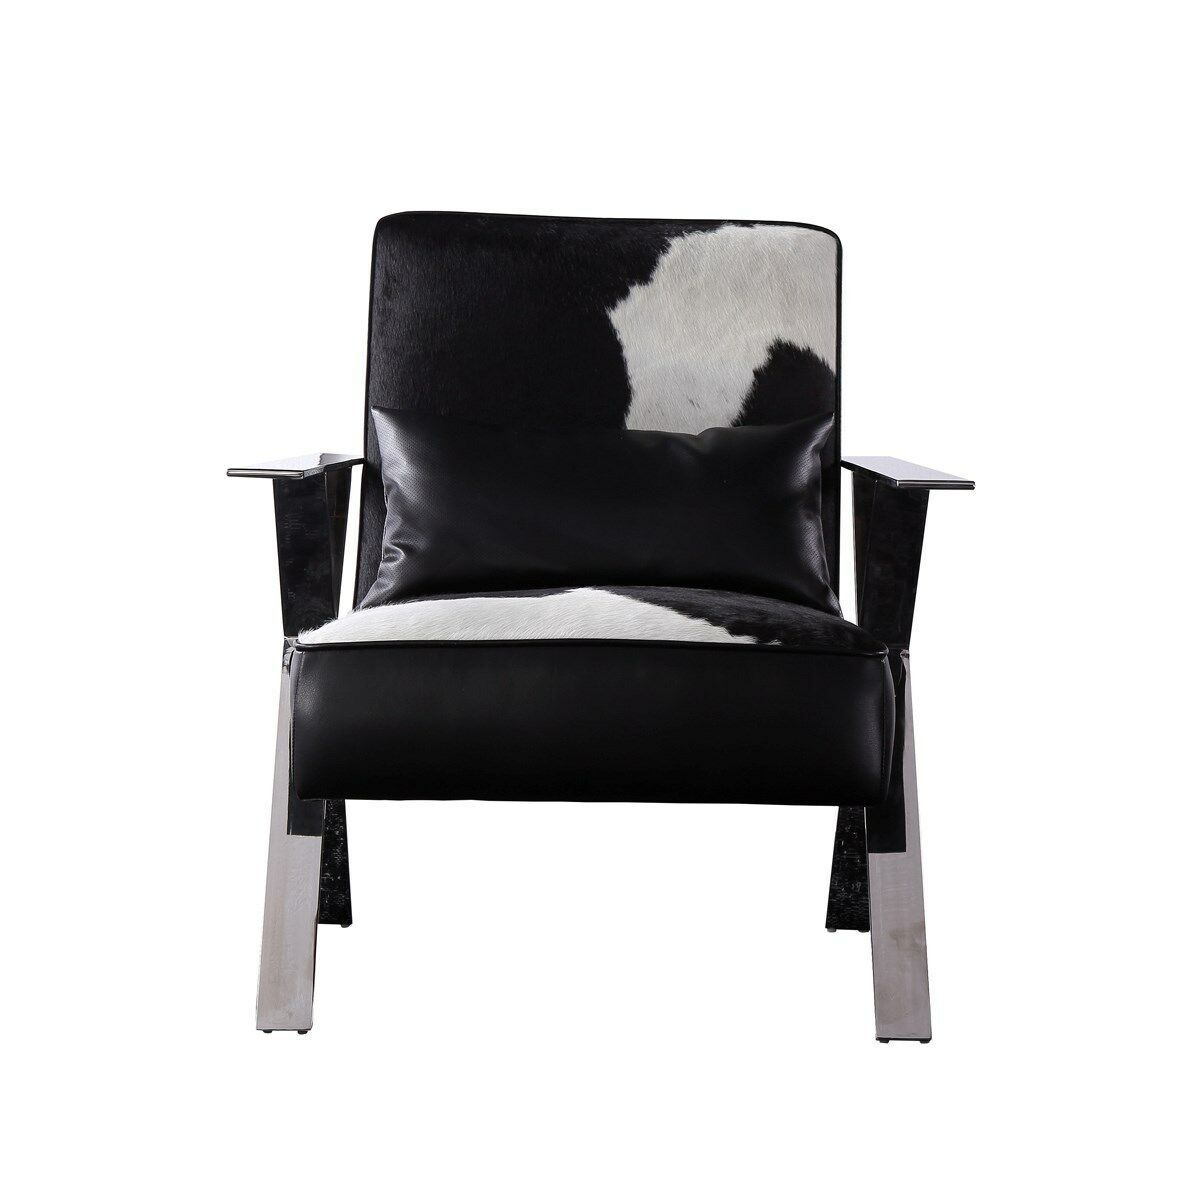 Leather Cowhide Pub Club Chair Awesome Modern  Contemporary Design,30'' x 36''H.